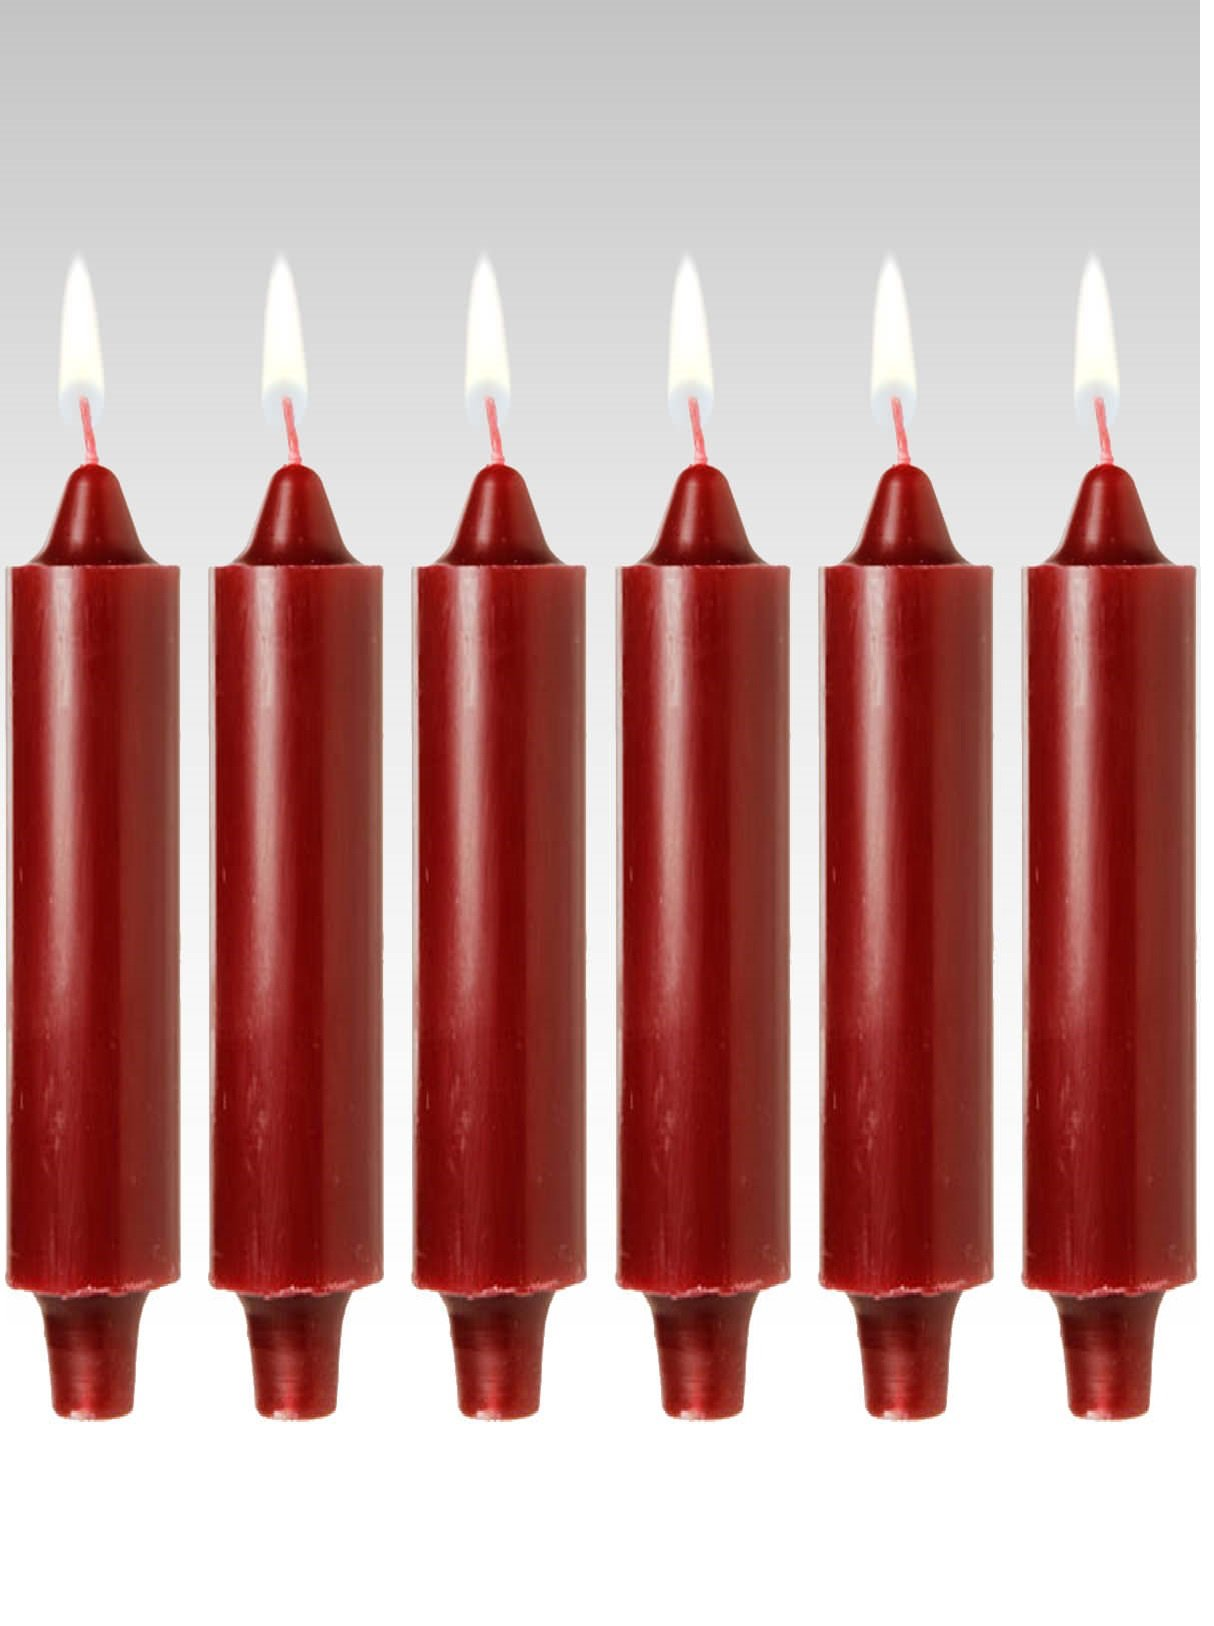 Candles4Less - 9 inch Burgundy Club Candles (Set of 6) Dripless and Smokeless Burgundy Club Candles with Lead Free Cotton Wicks Made in USA